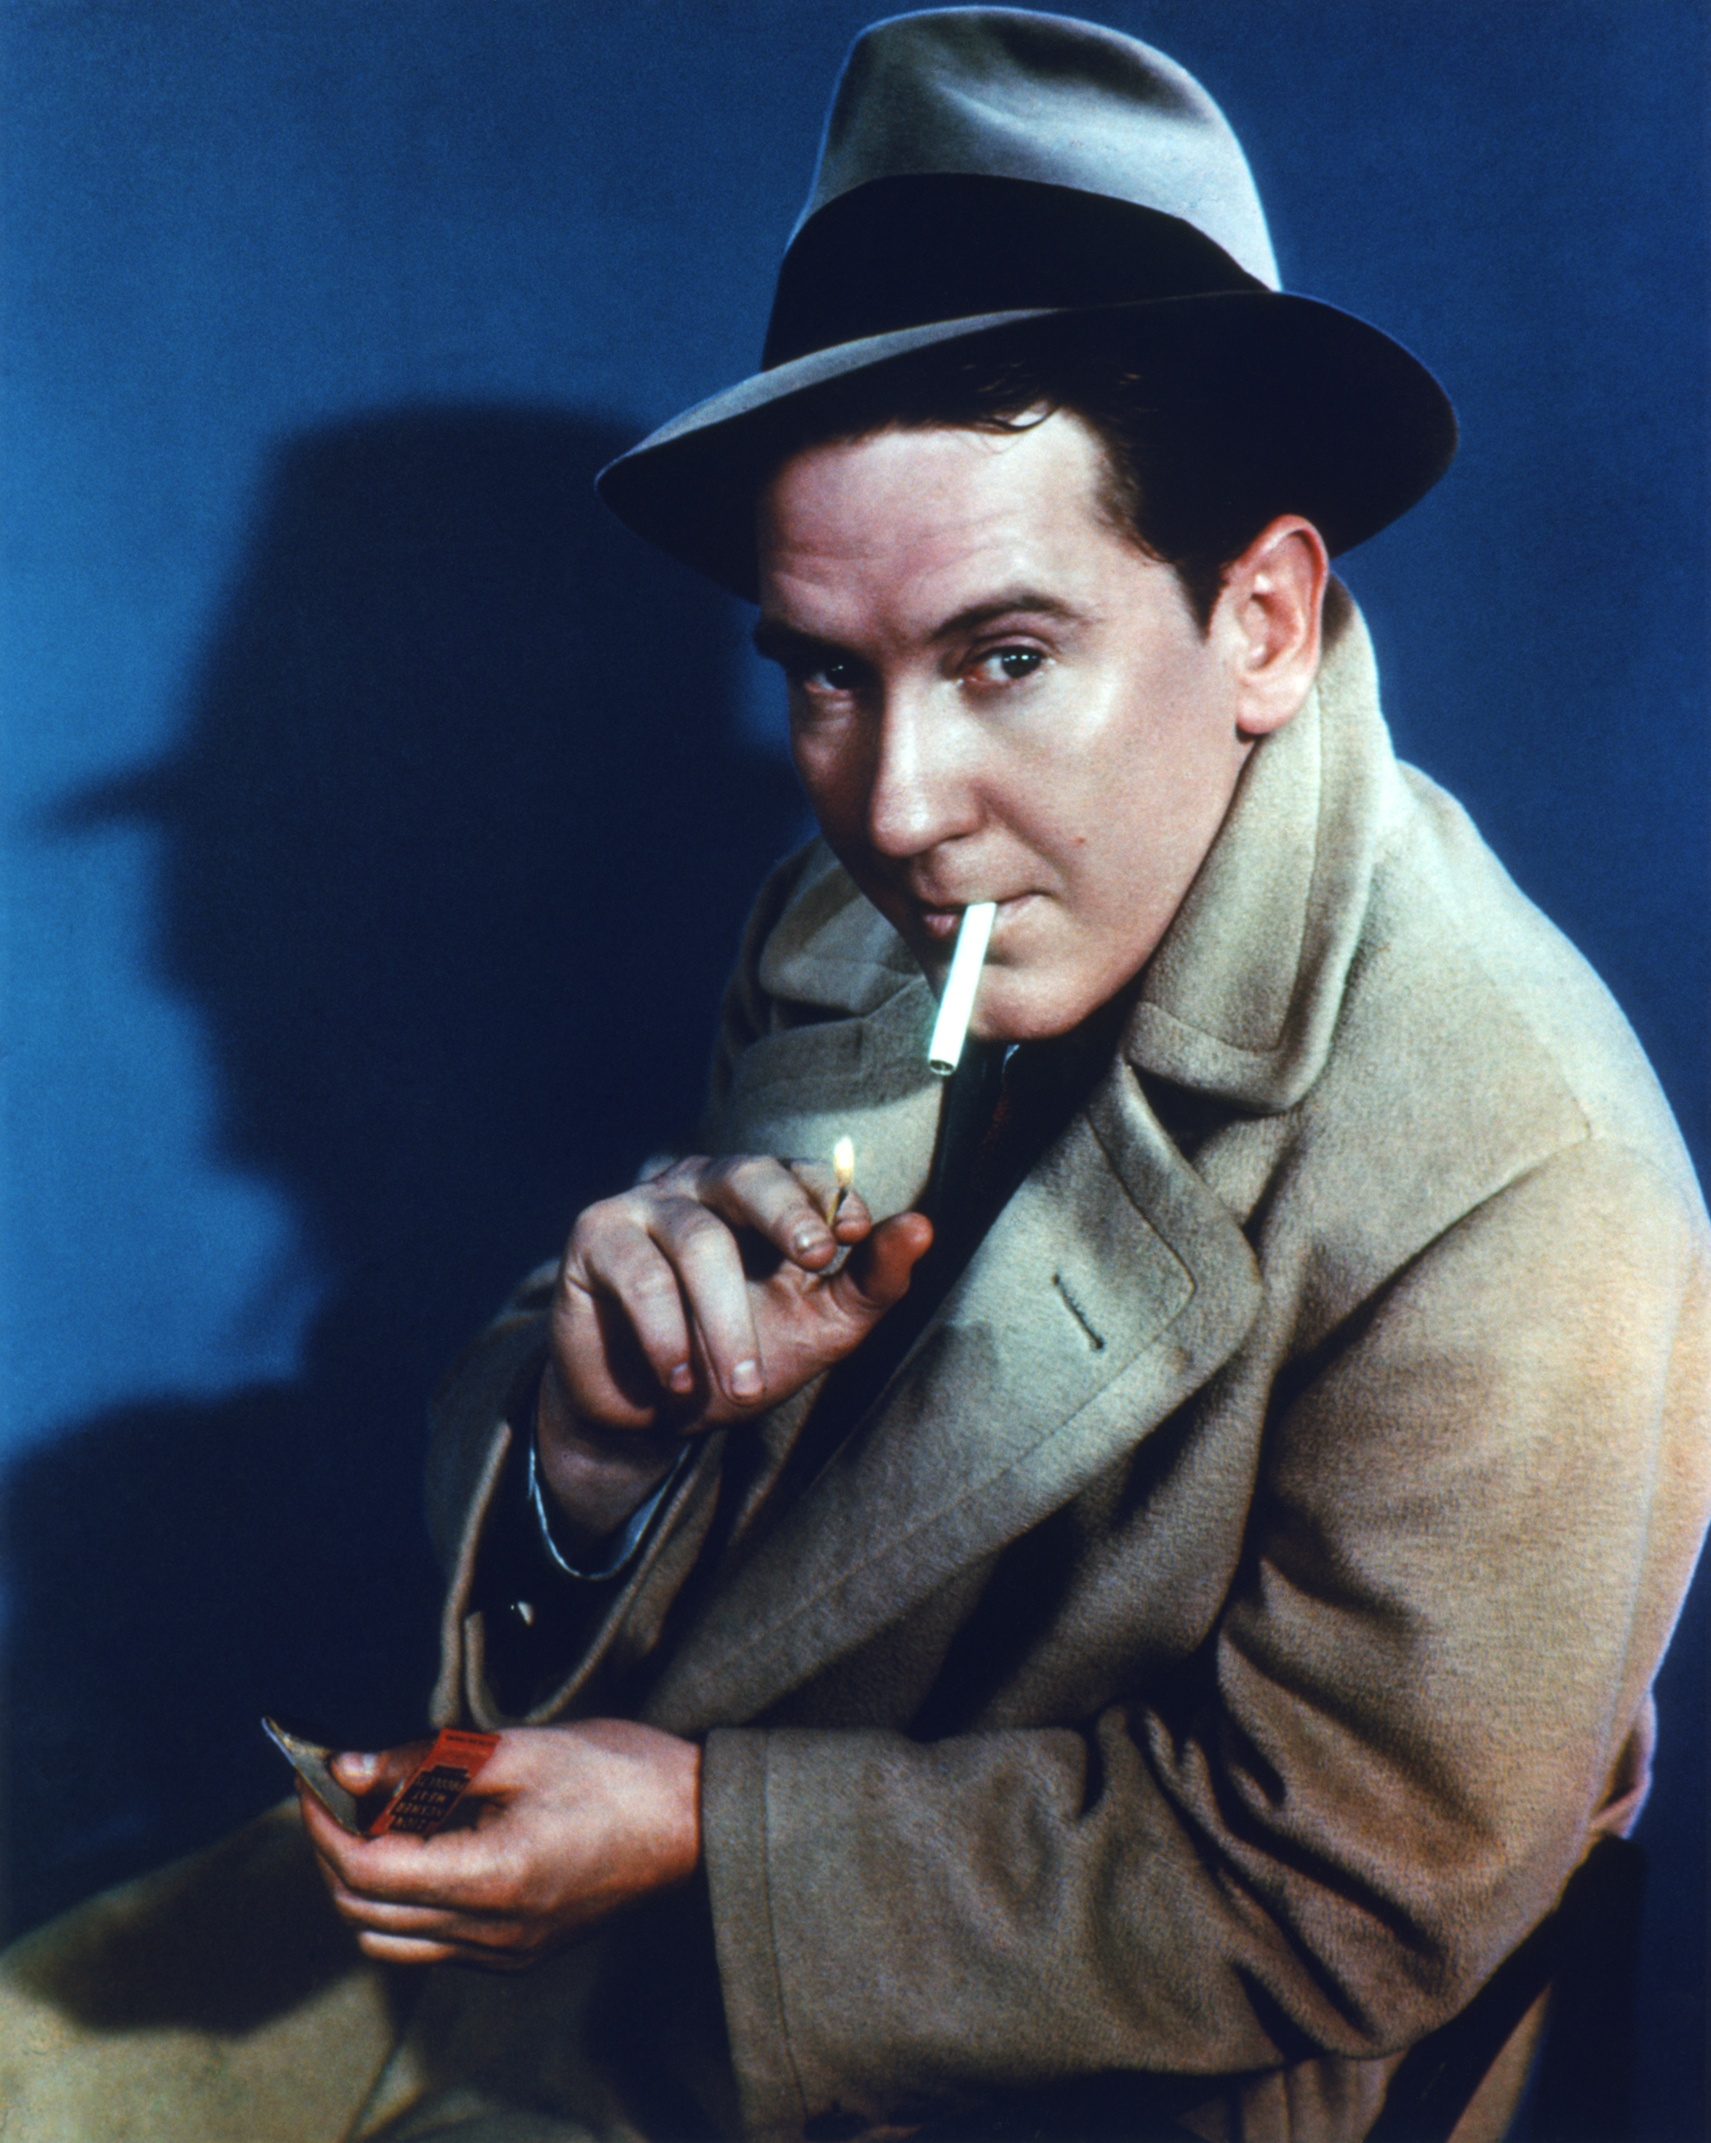 Burgess Meredith in Street of Chance (1942)